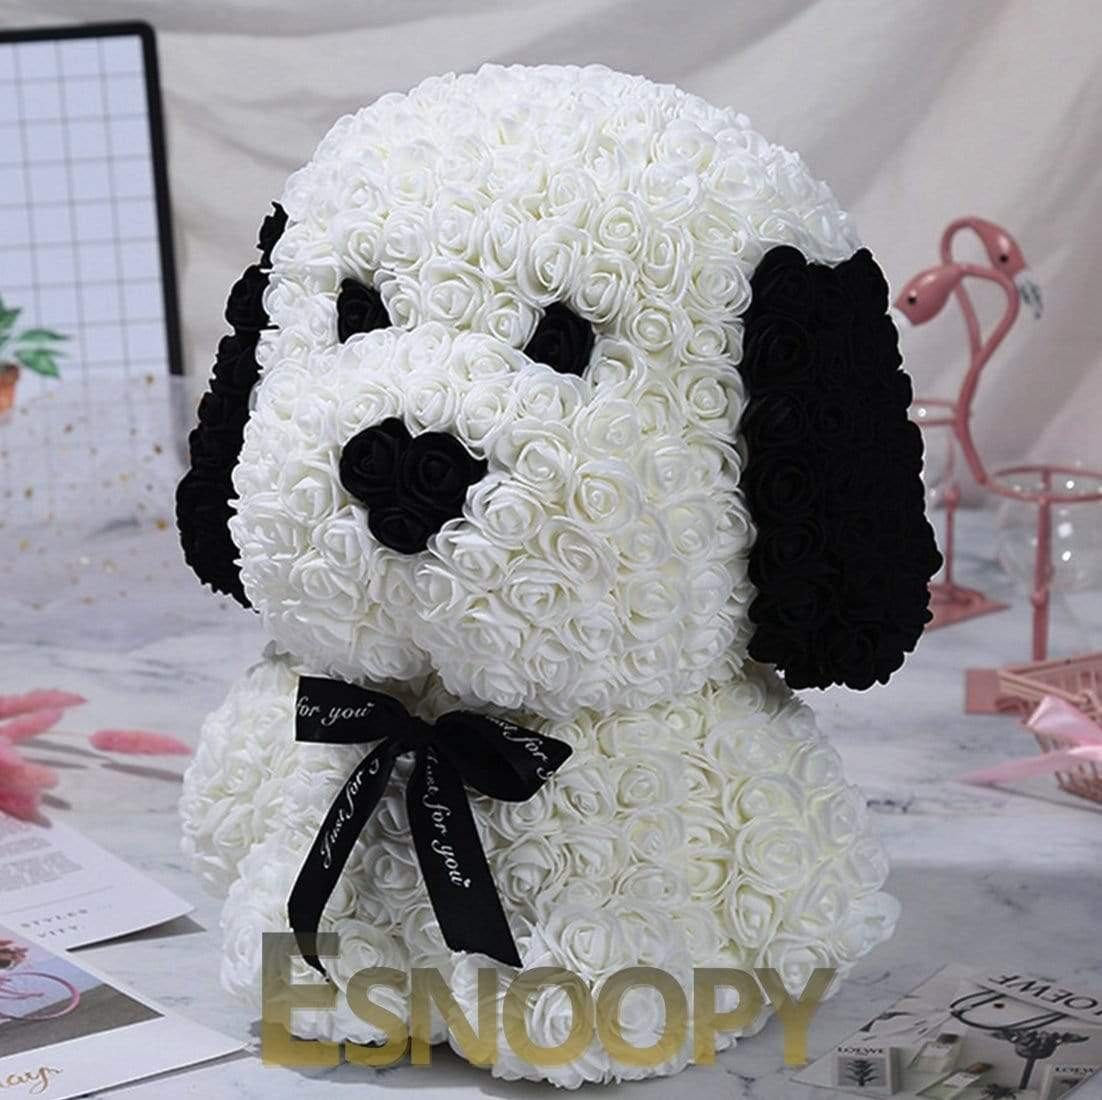 Esnoopy™ Teddy Rose 🌹 toy Esnoopy White 38cm